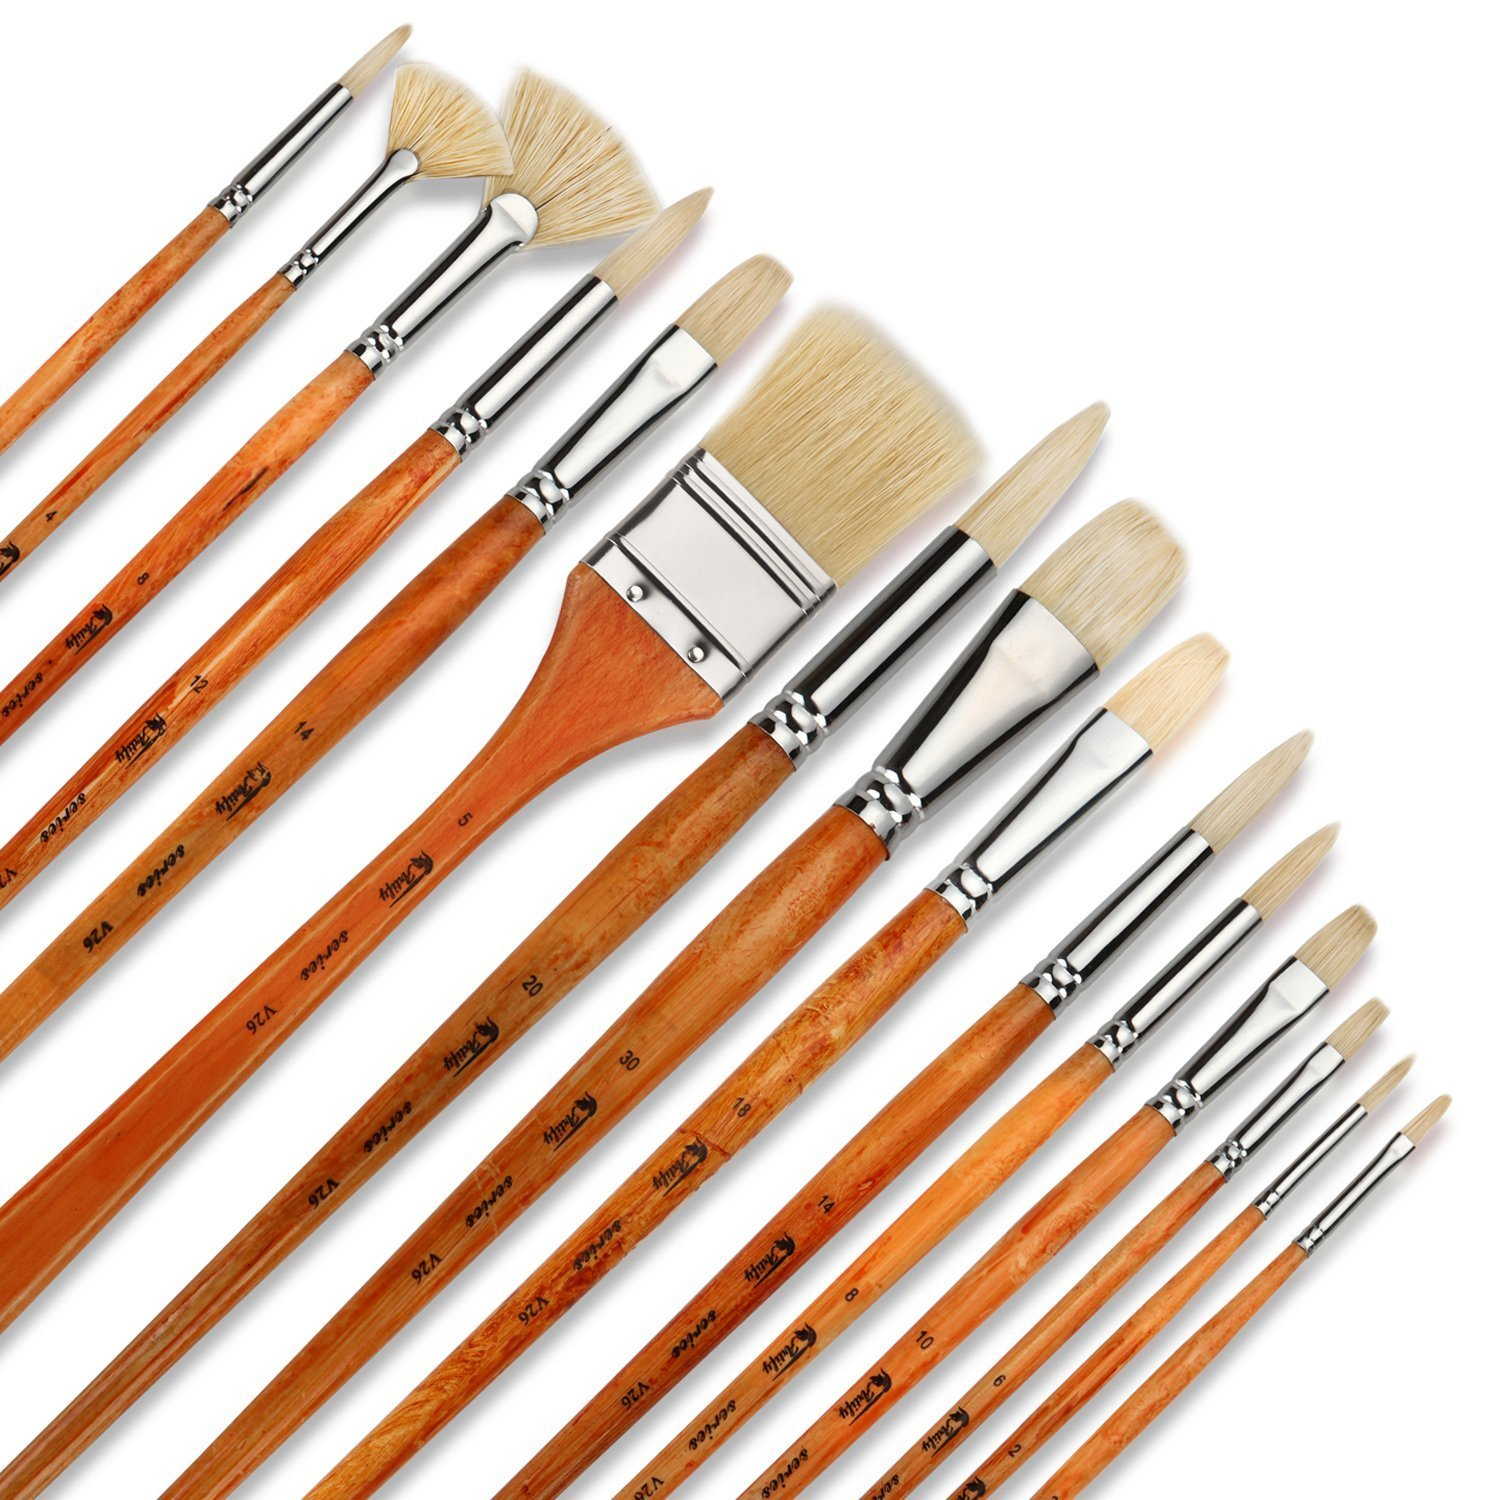 Artify 15 pcs Professional Paint Brush Set Perfect for Oil Painting with a Free Carrying Box Artify Art Supplies 4336960812